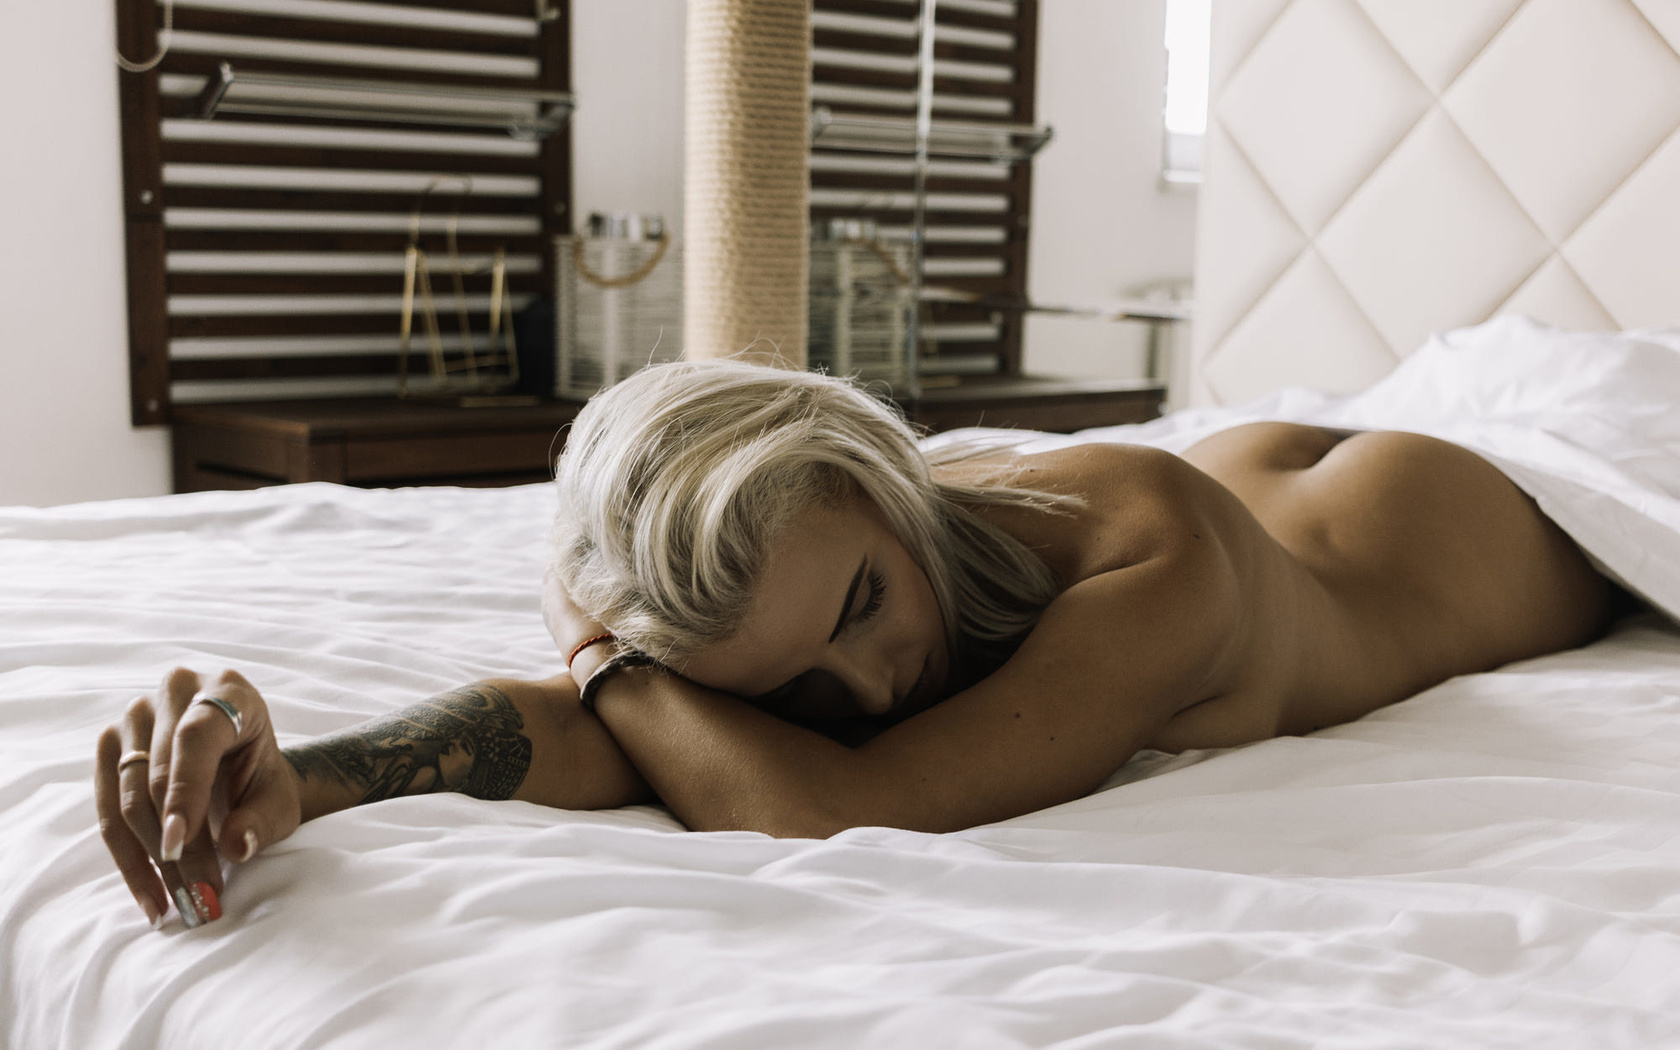 girl, sexy, women, beautiful, woman, bed, cute, hot, pretty, tattoo, blonde, window, earrings, ring, ass, boobs, relax